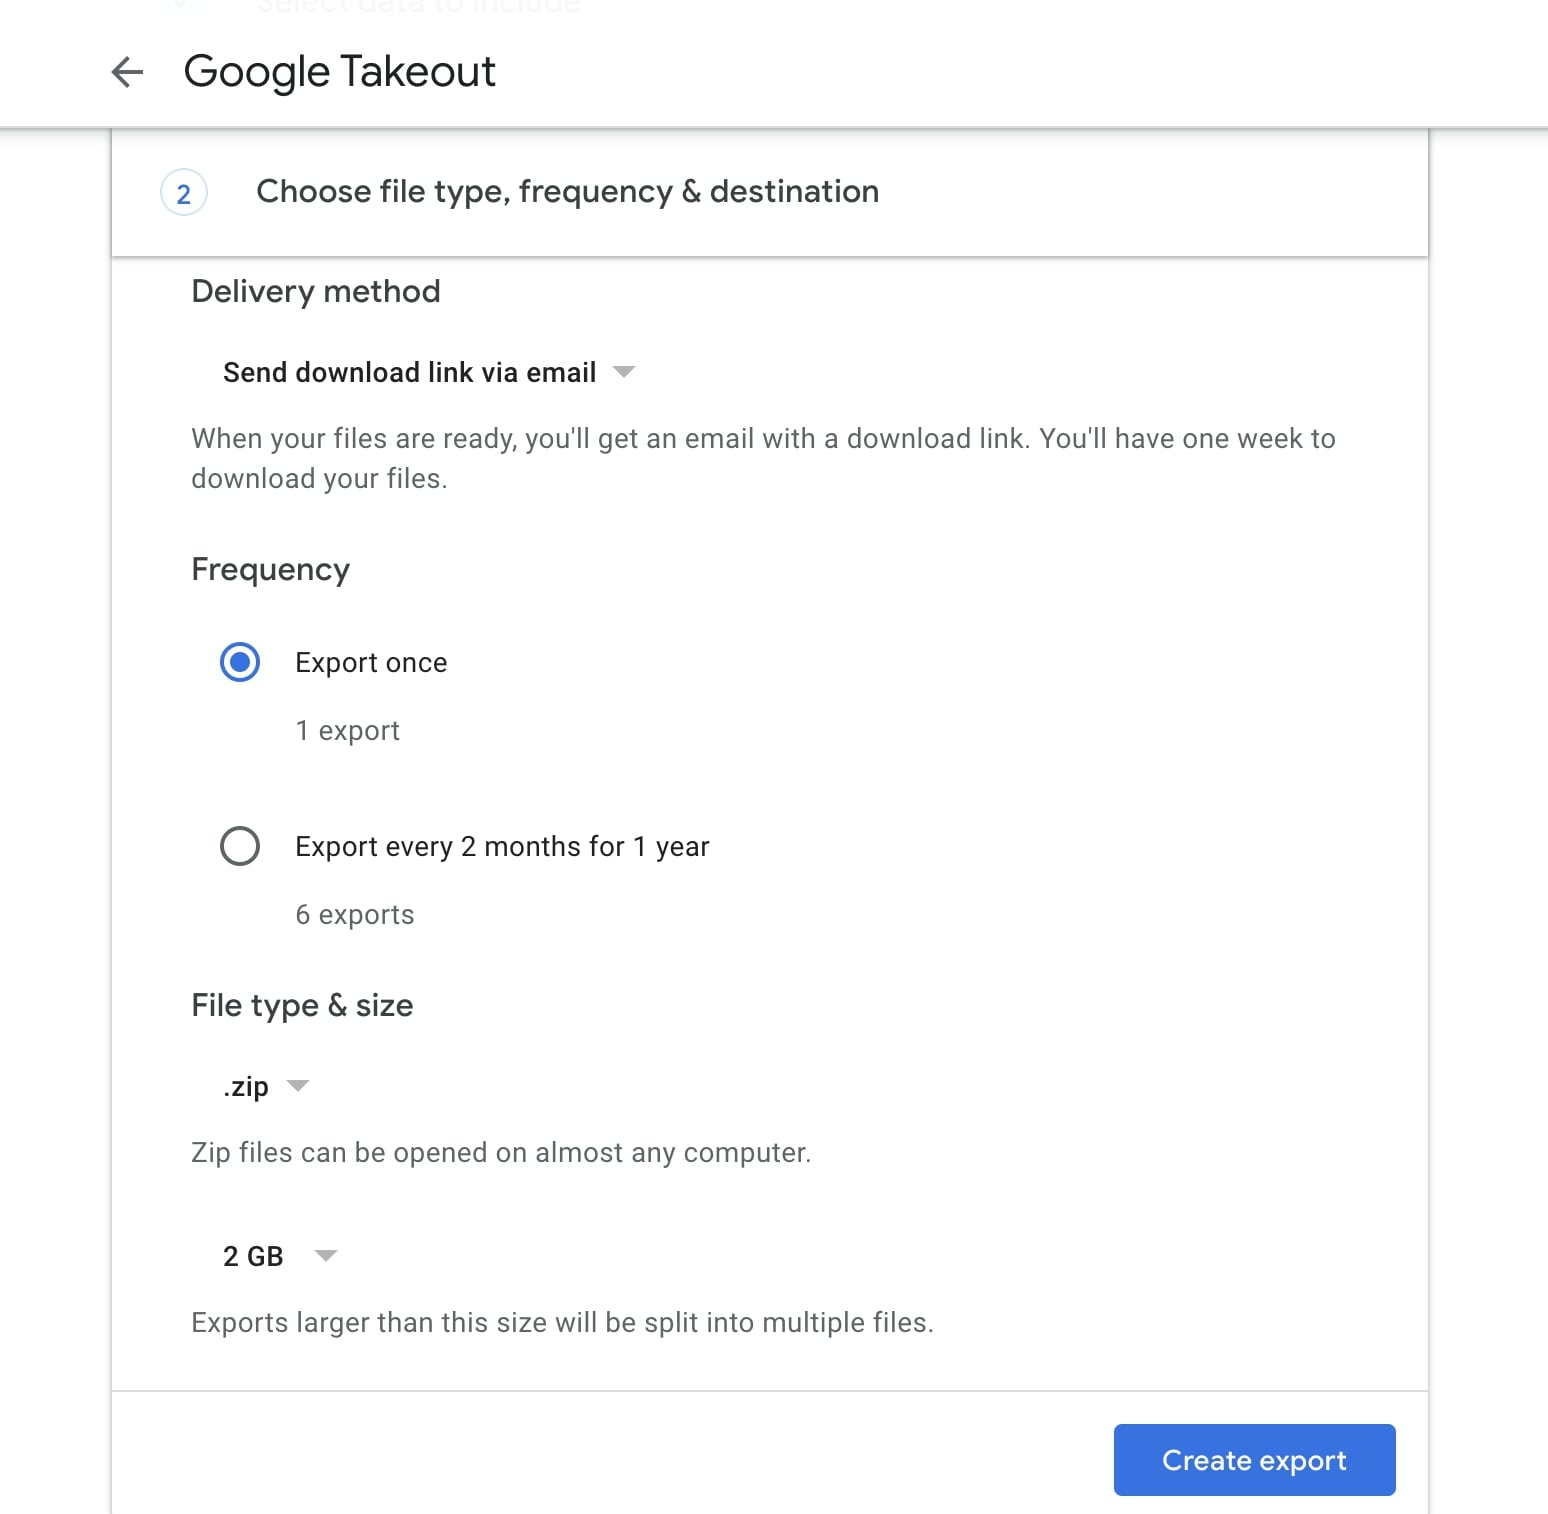 Google Takeout Create export